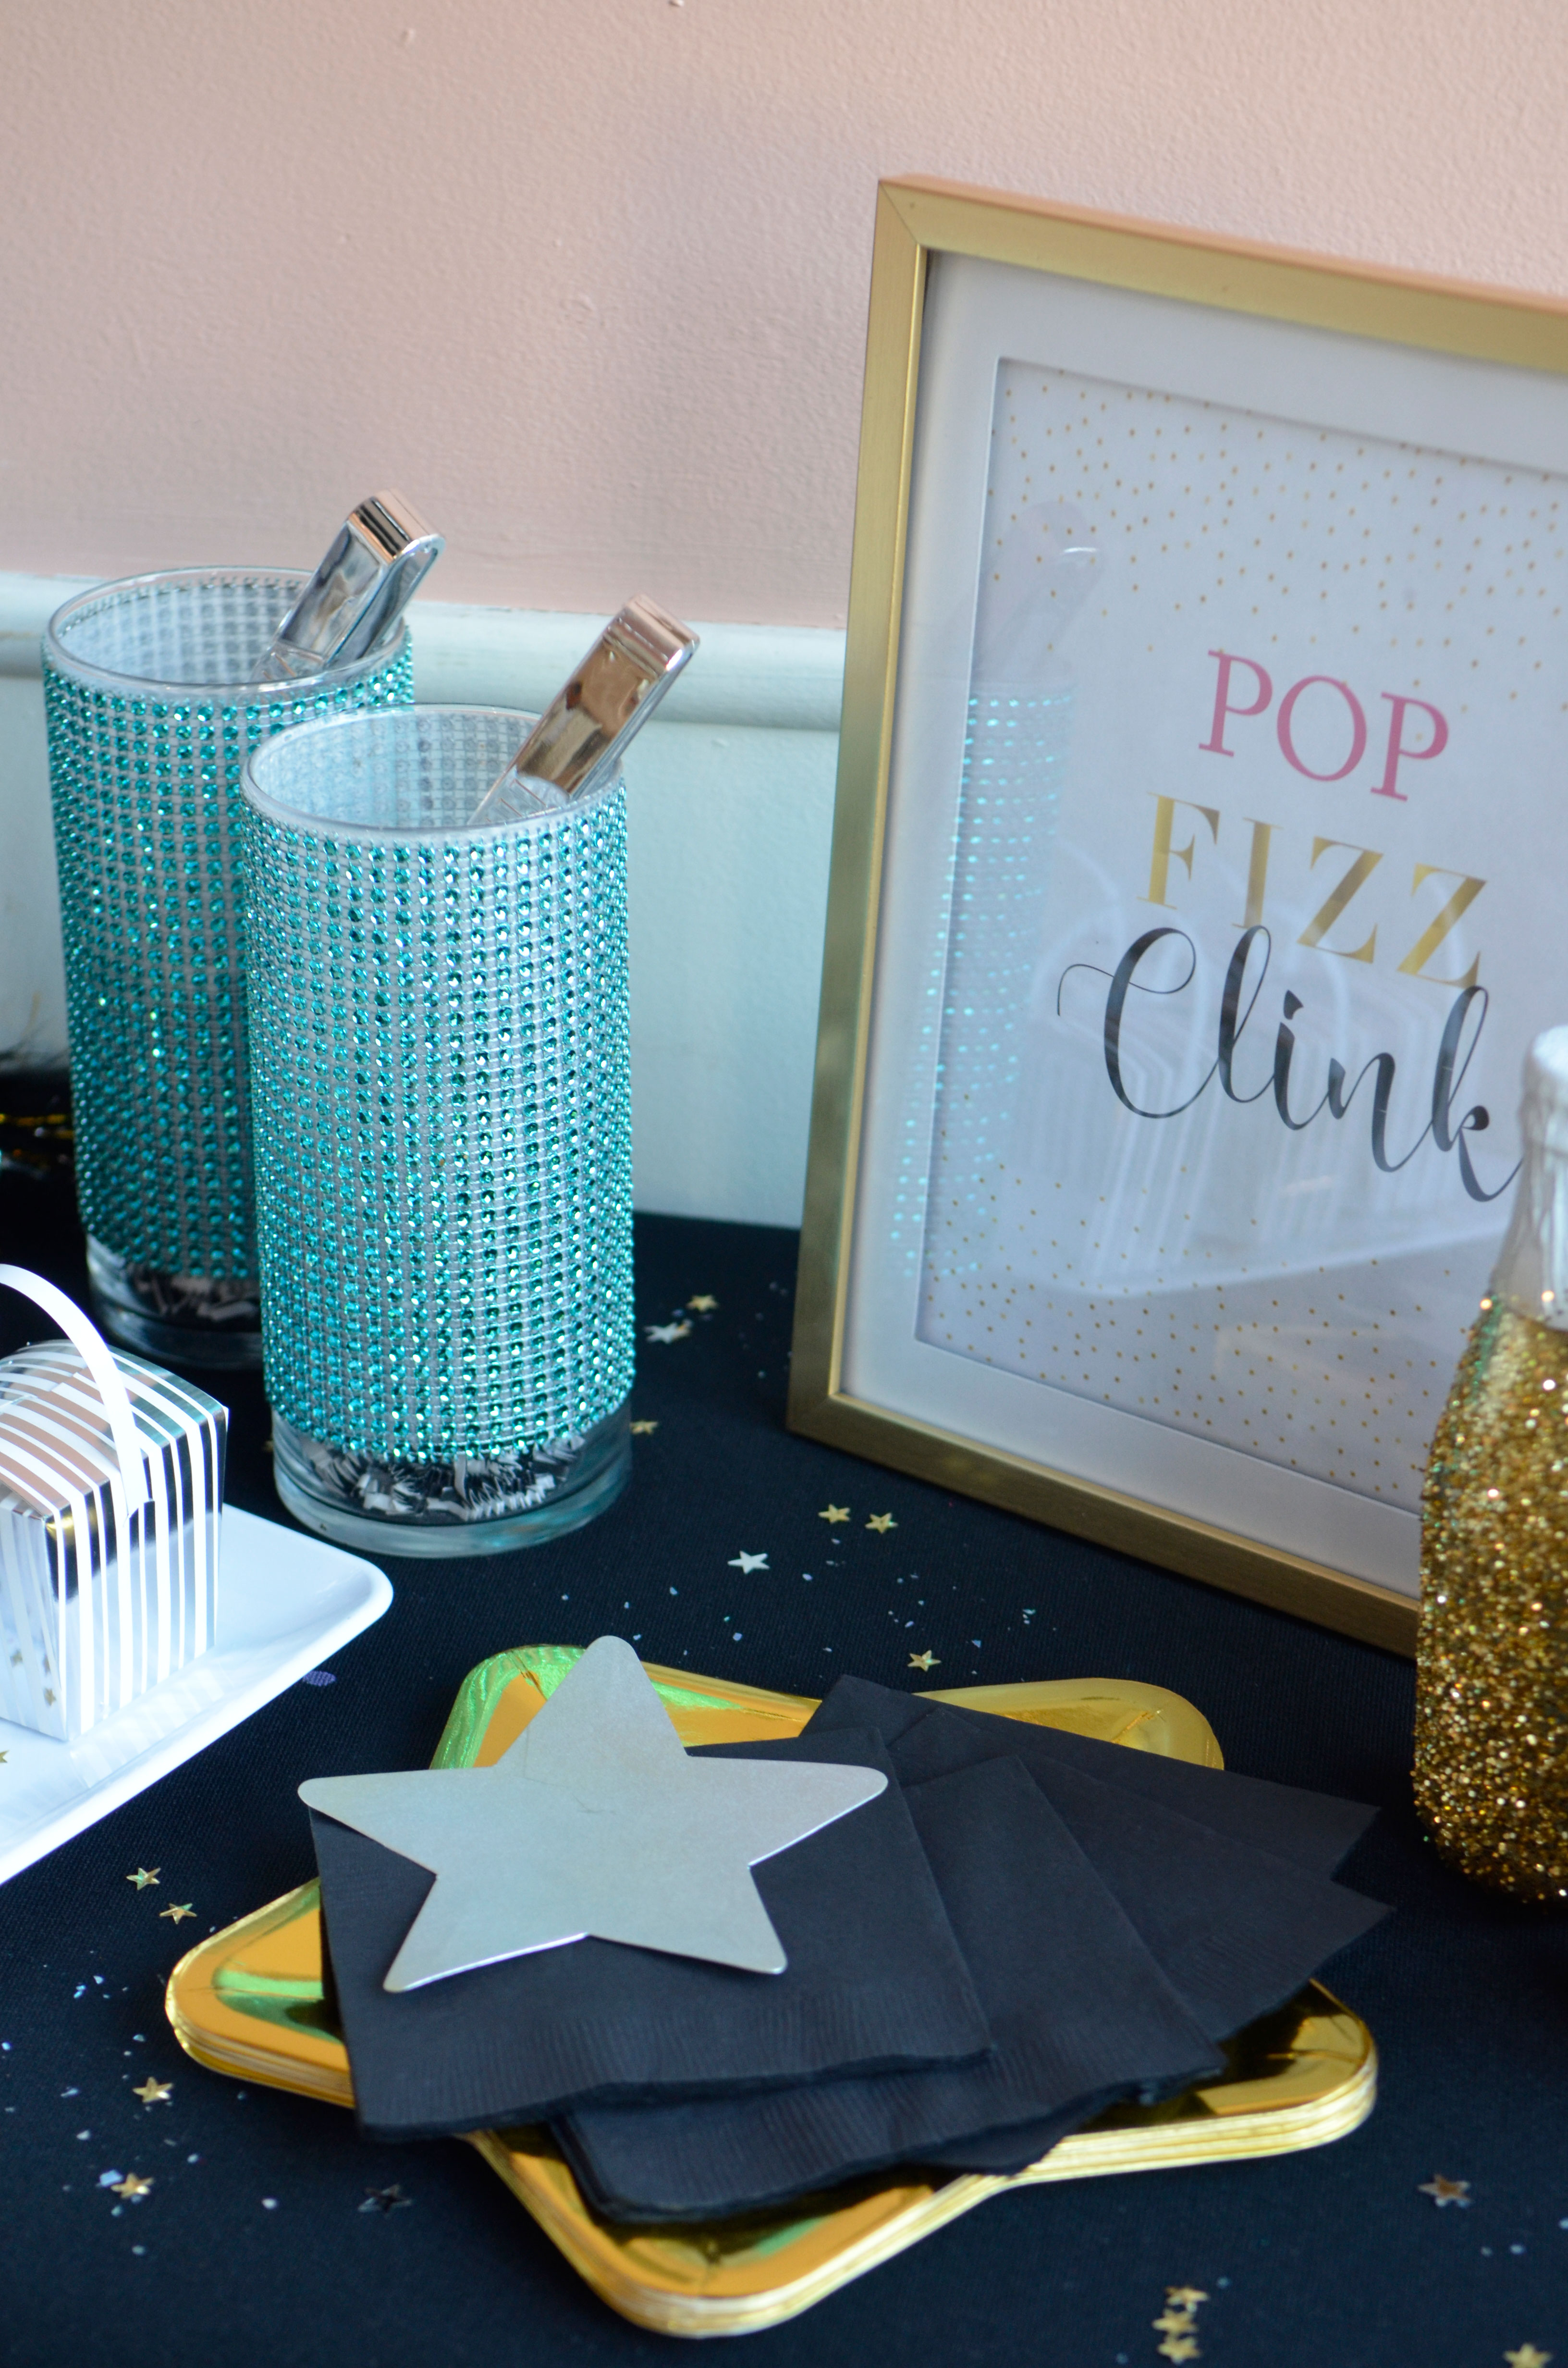 new years eve party ideas decorations cheap dollar tree diys the makeover mom bubbly bar drink buffet 2018